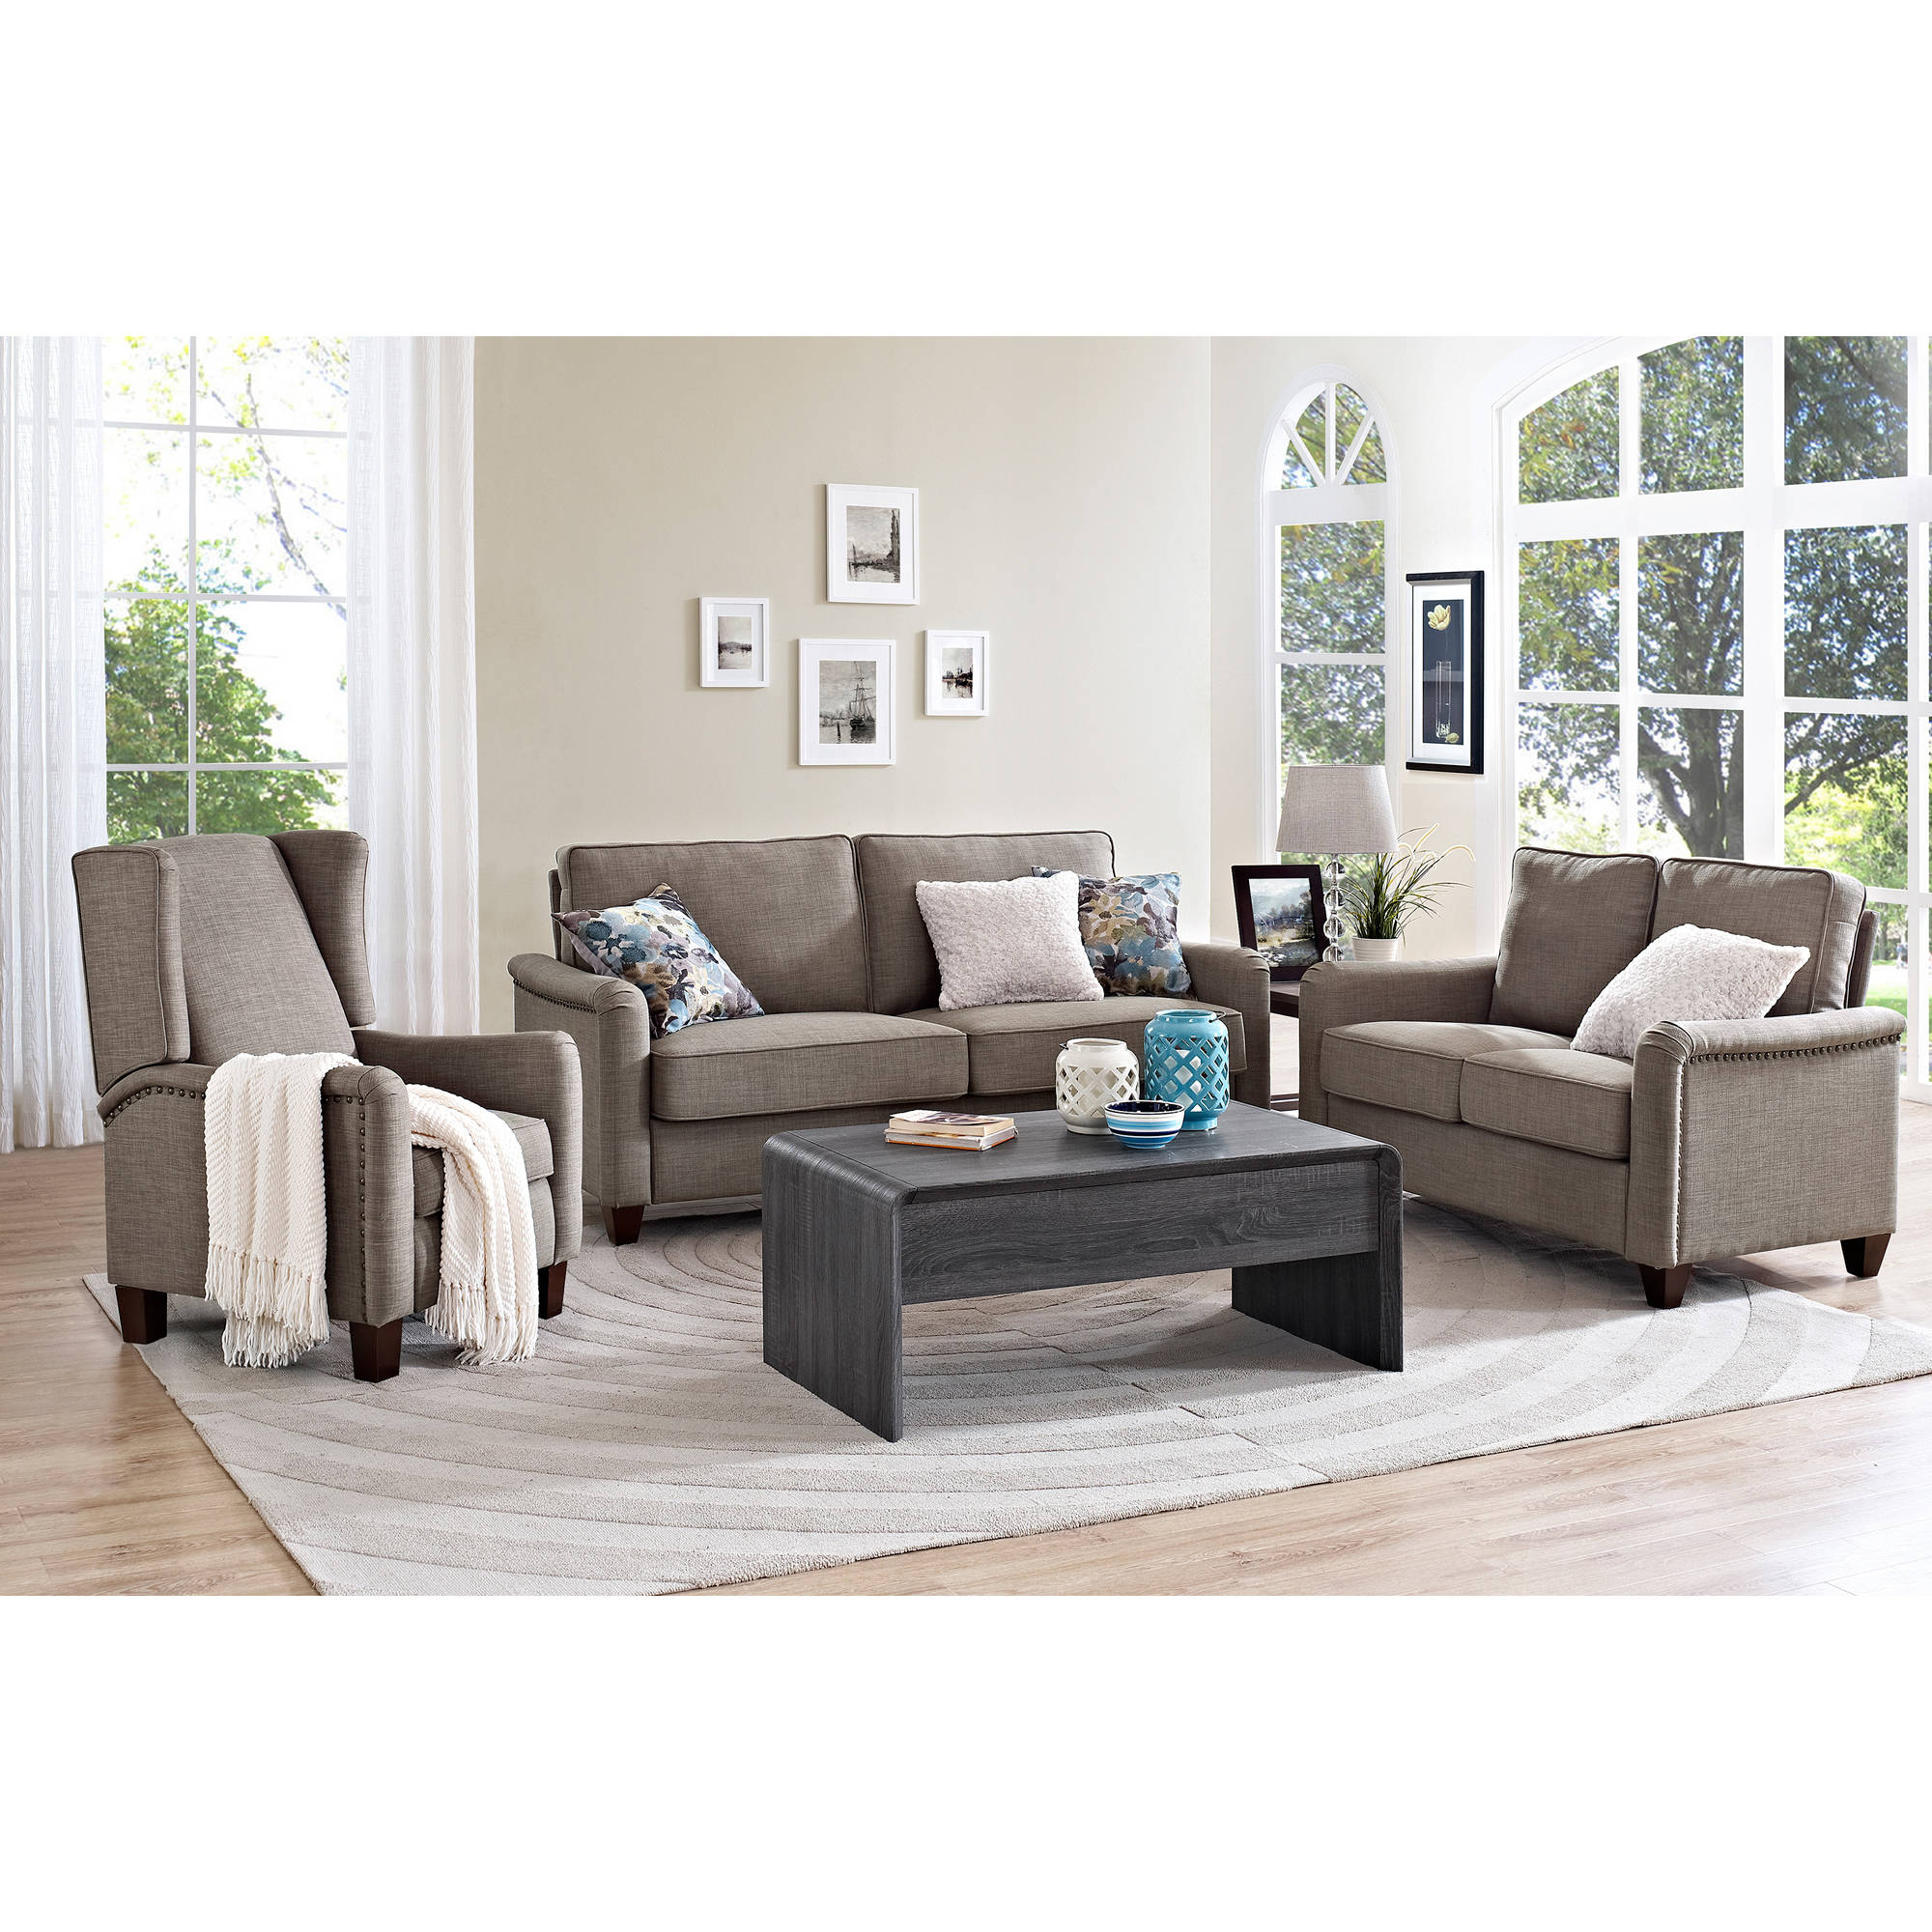 Better Homes and Gardens Grayson Loveseat with Nailheads 52